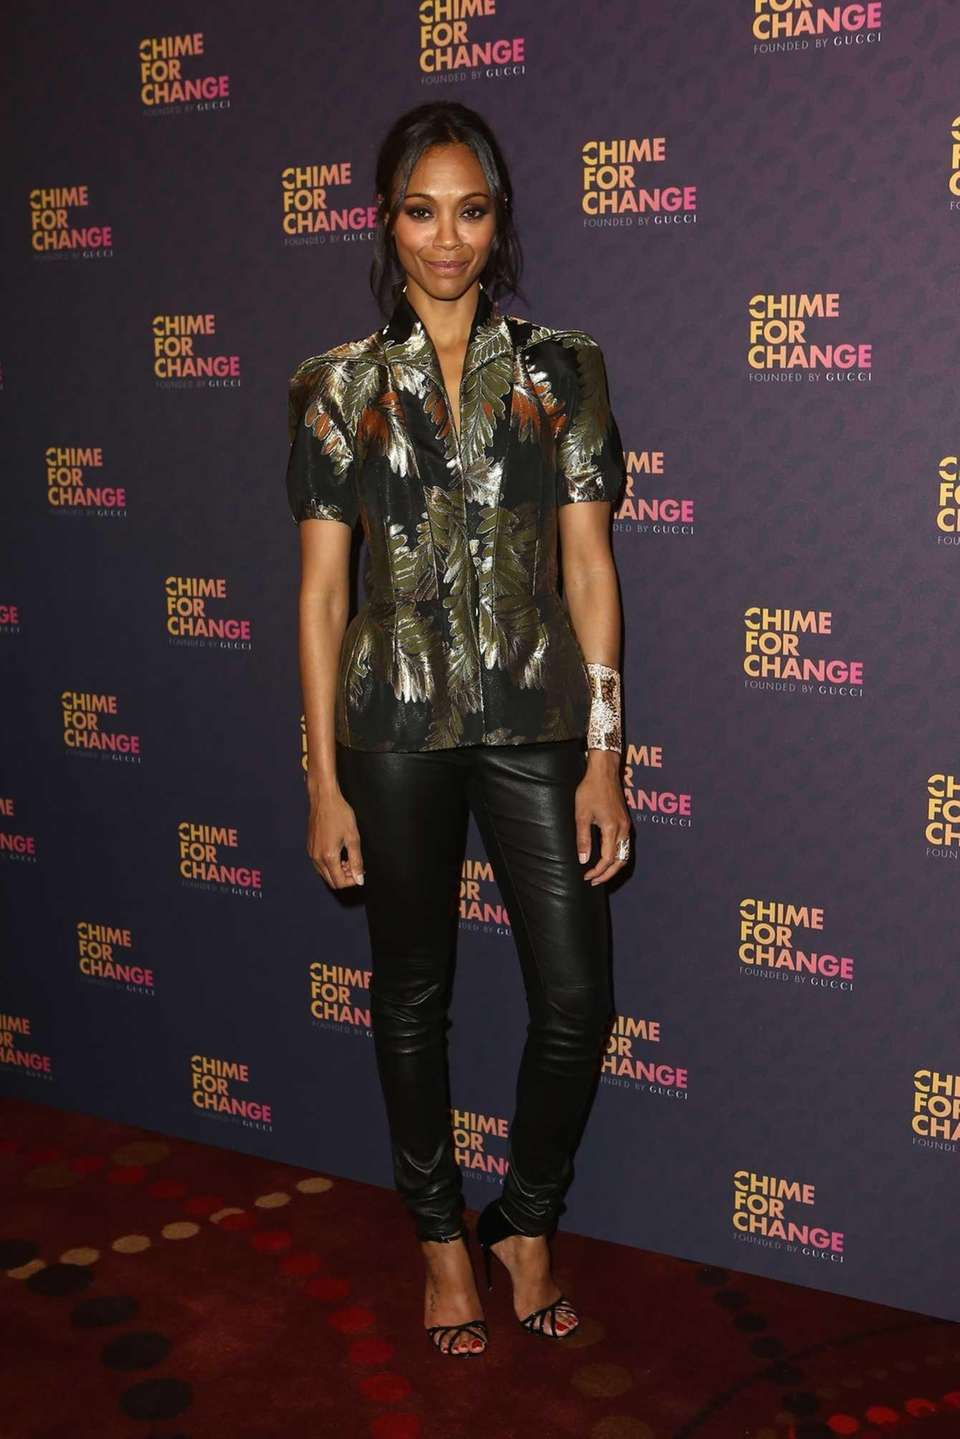 Actress Zoe Saldana at the